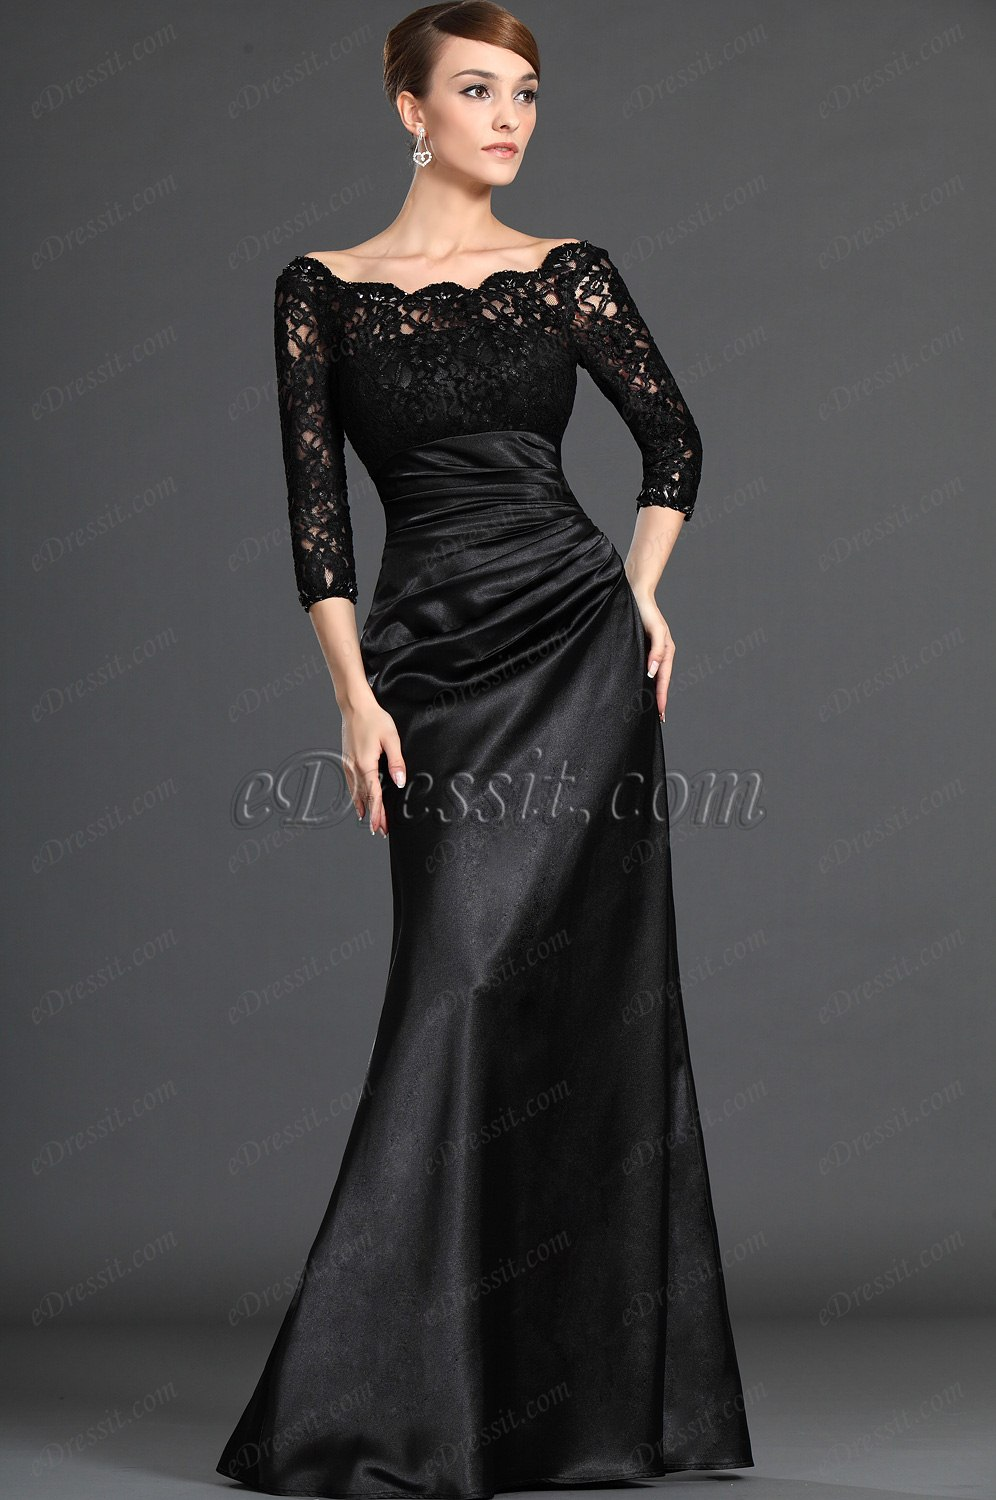 Clearance Sale !eDressit Mother of the Bride Dress (26121800B)